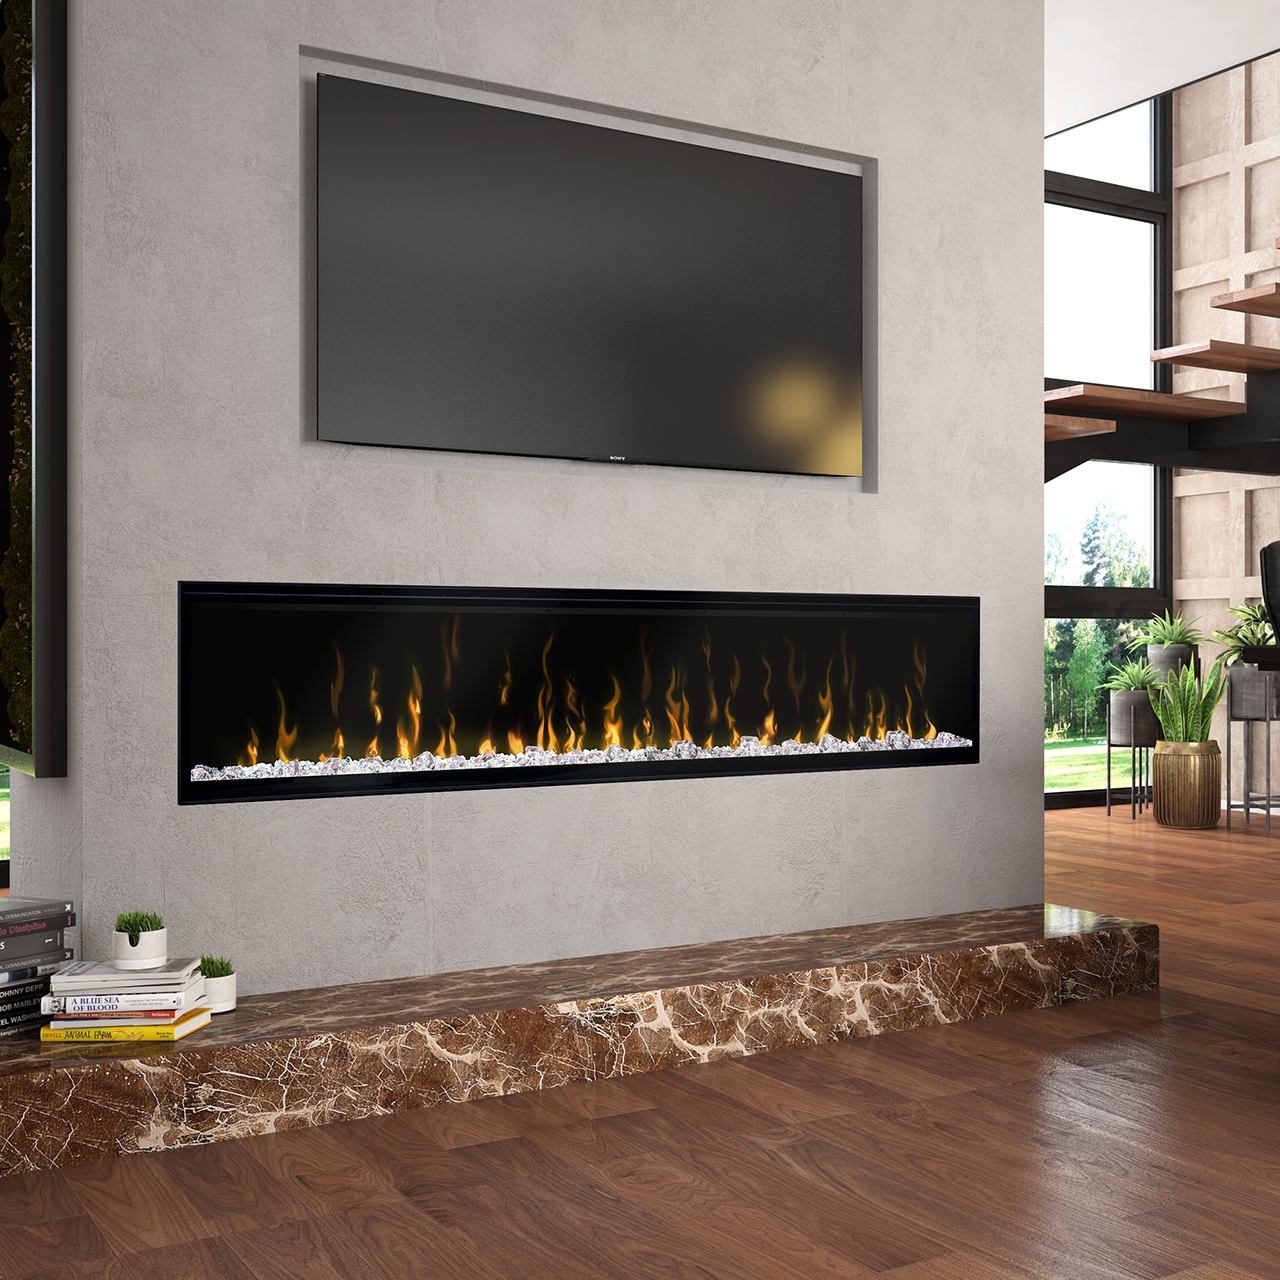 "IgniteXL® 74"" Linear Electric Fireplace"